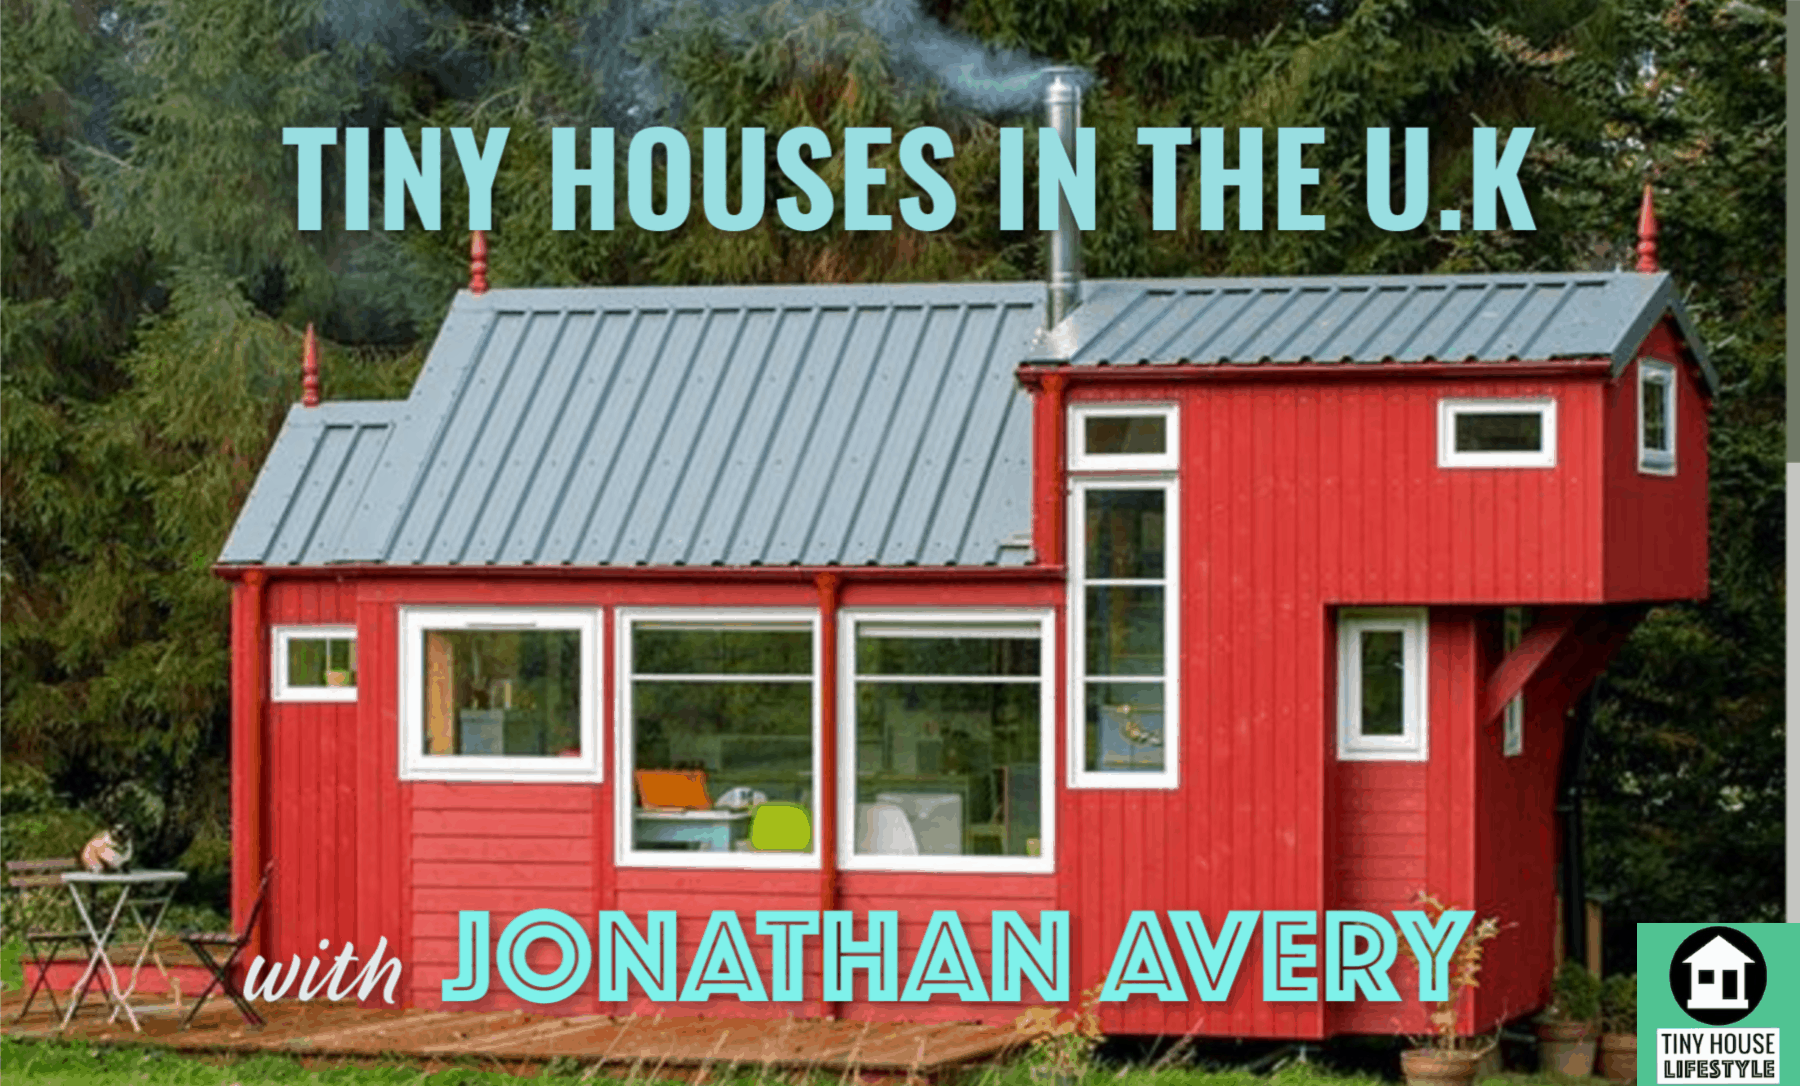 Tiny Houses in the U.K. with Jonathan Avery - #20